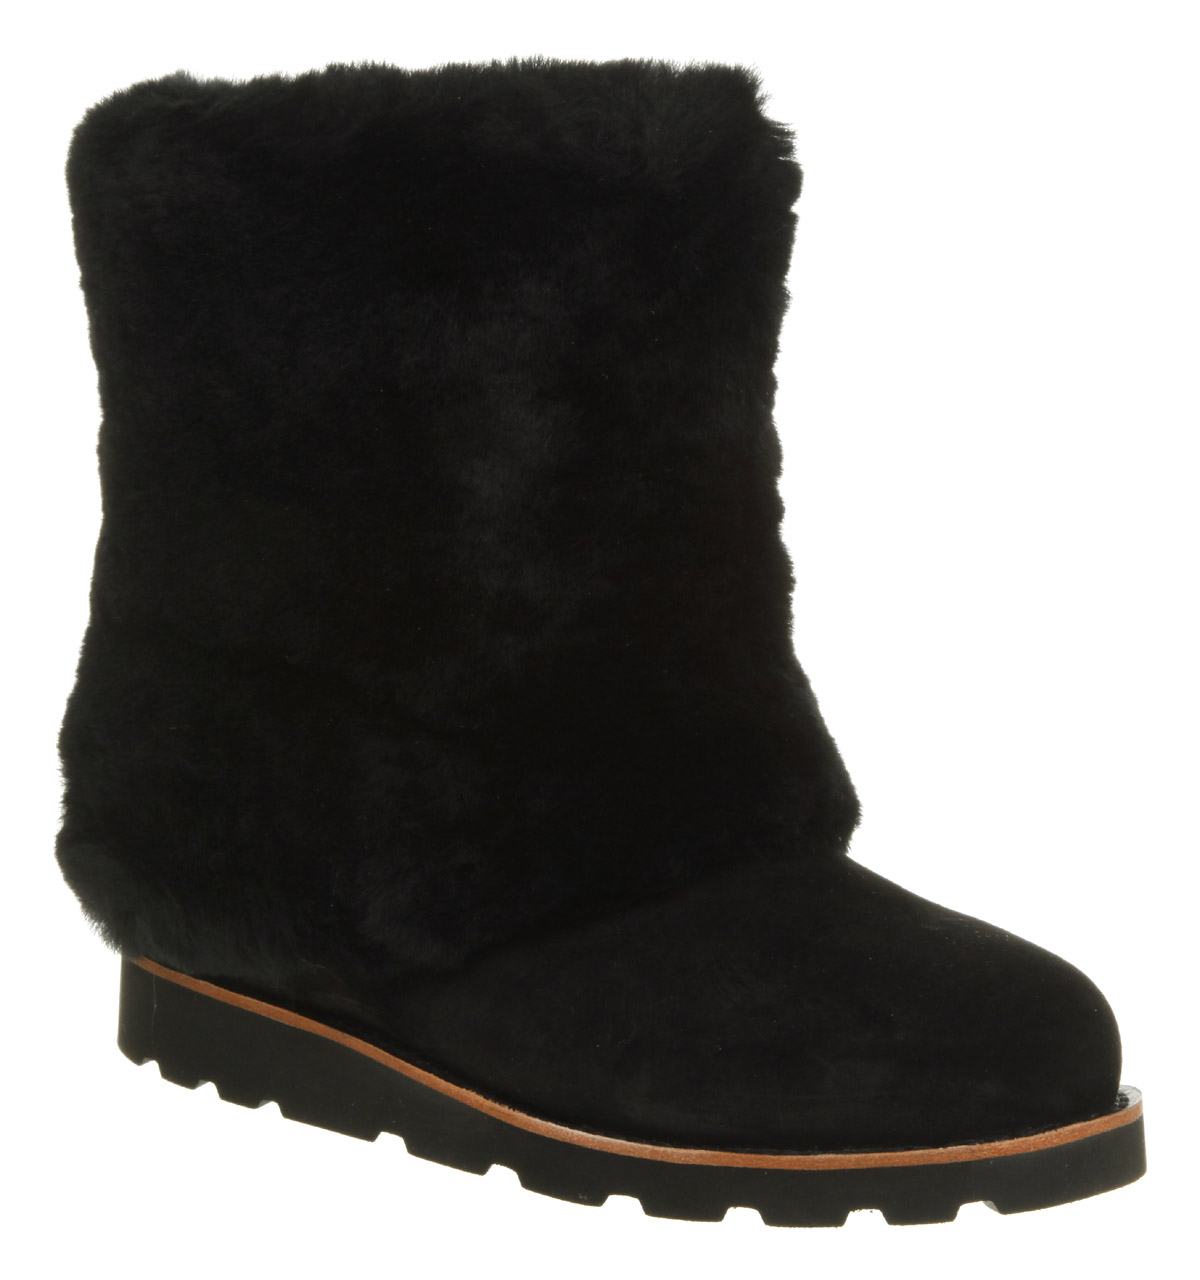 the cheapest ugg boots online